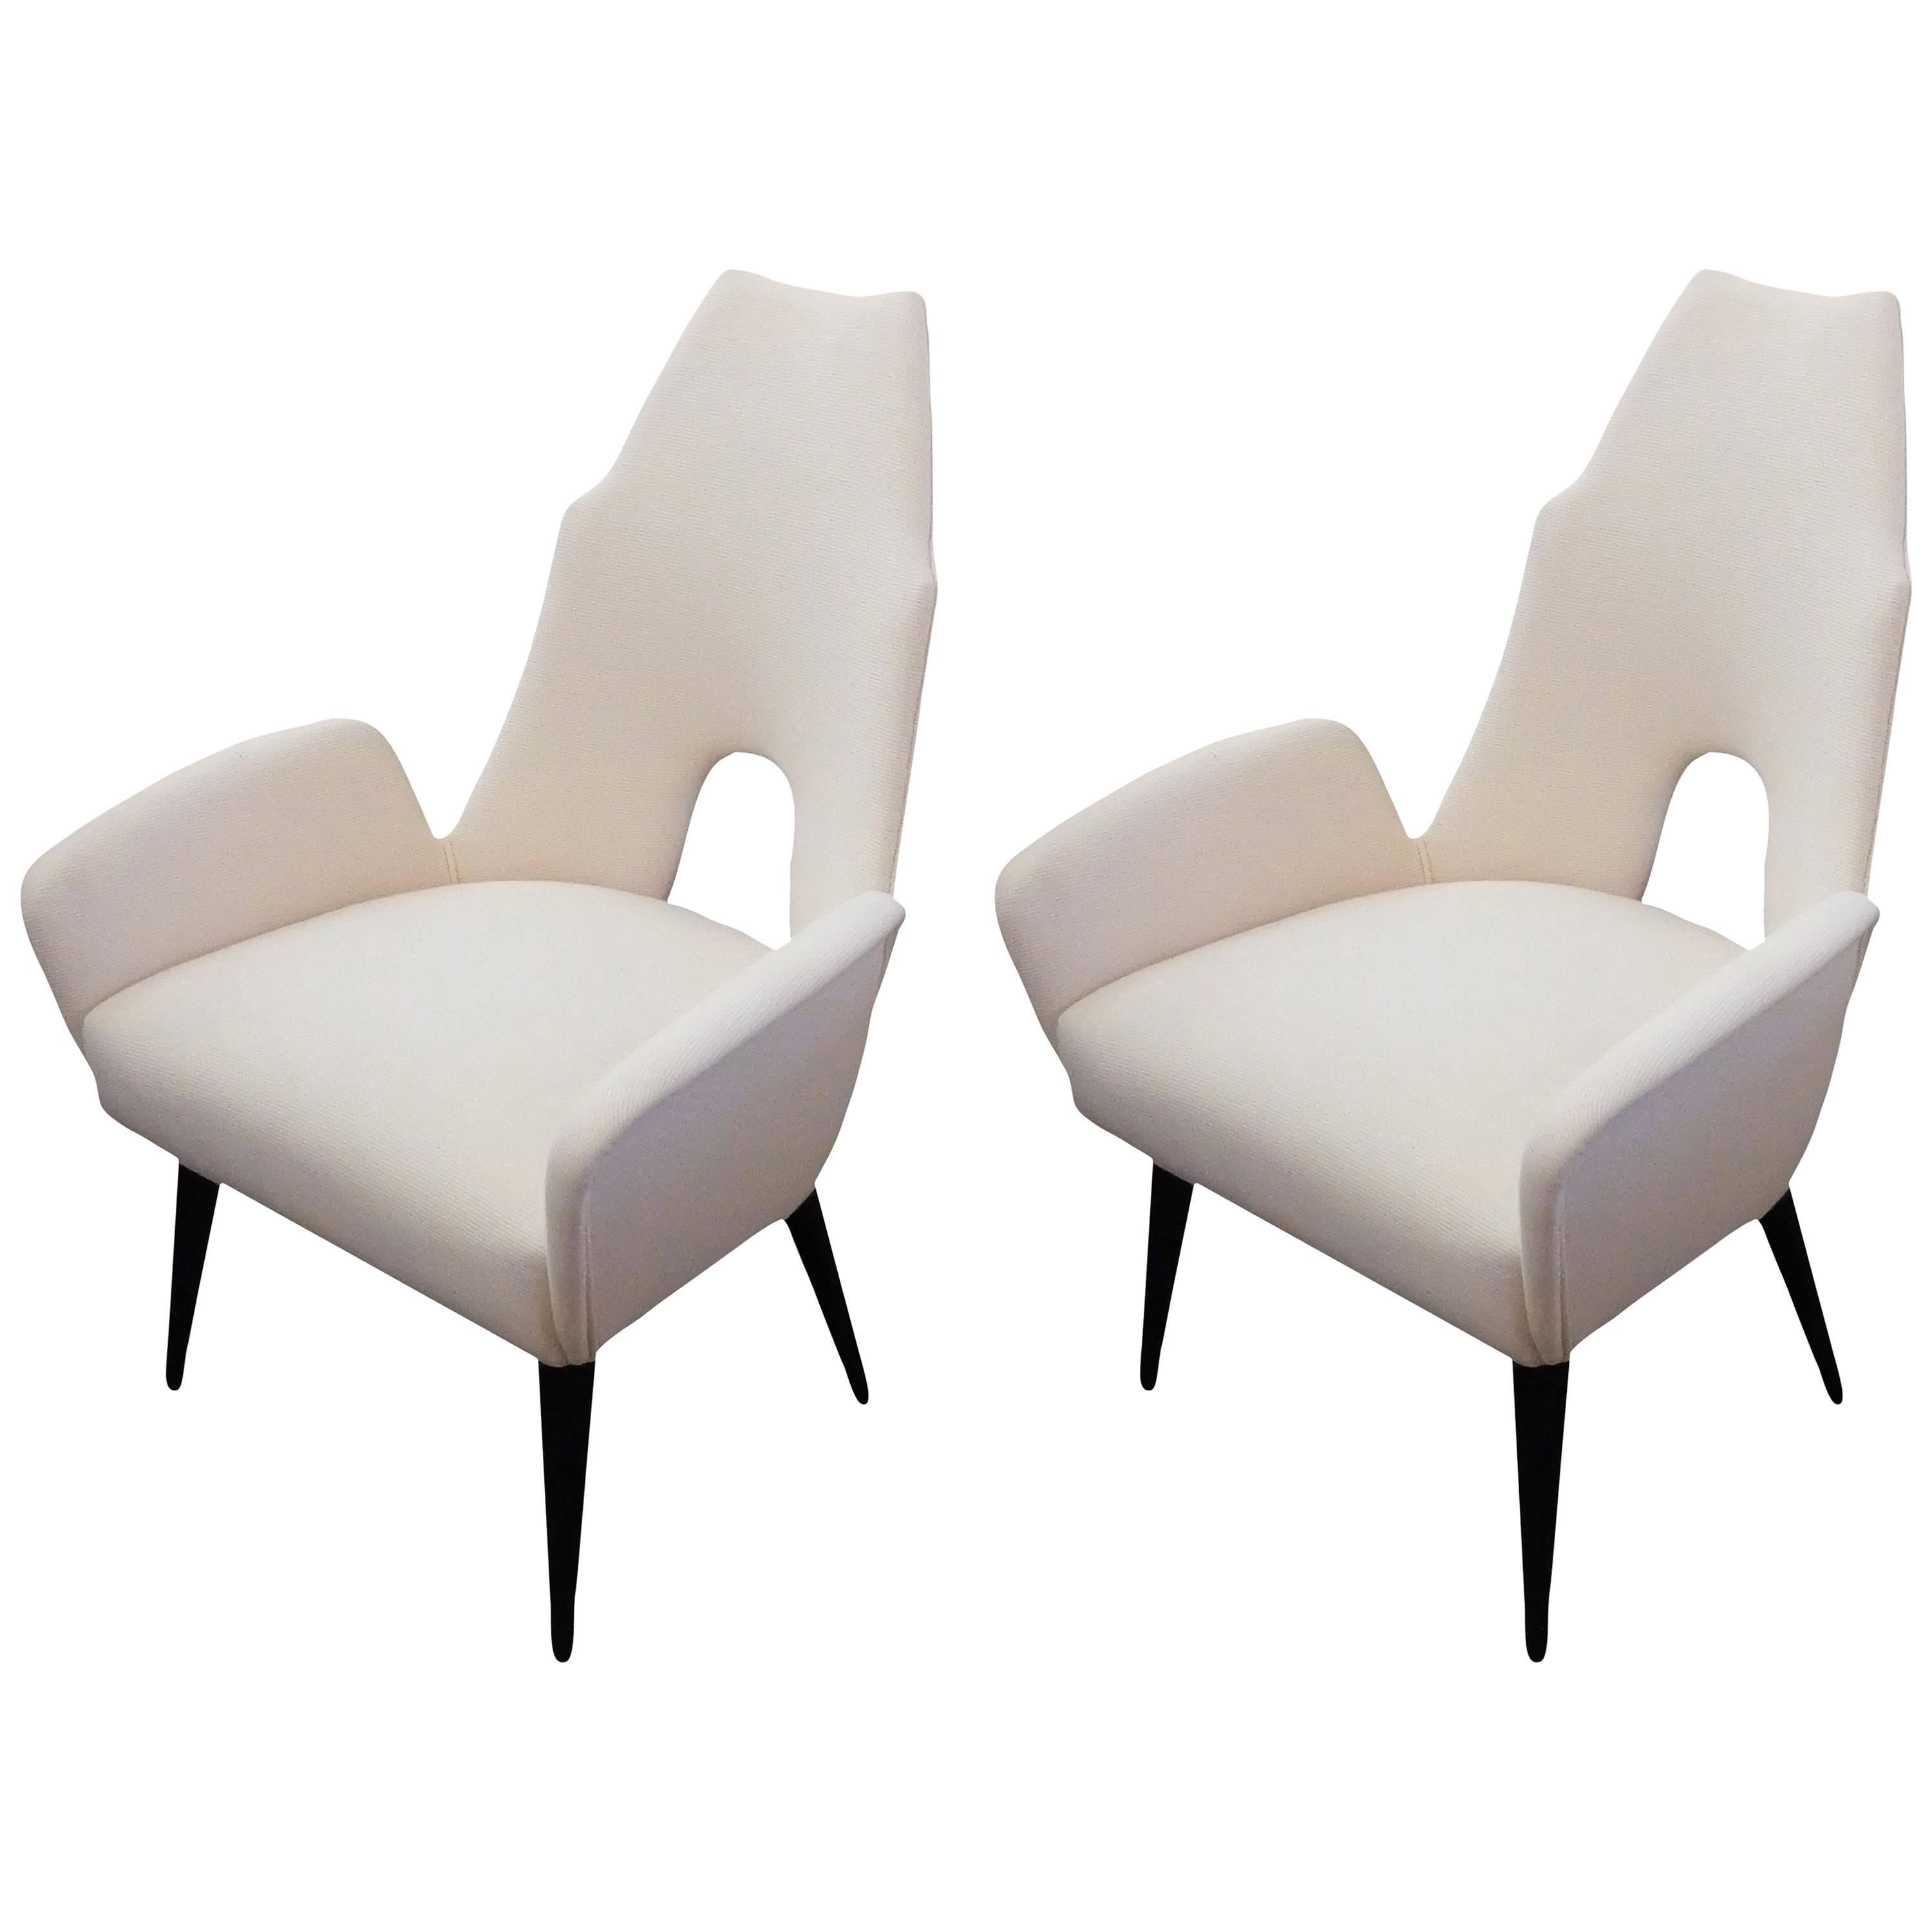 Pair Of Pristine White High Back Chairs In The Manner Of Adrian Pearsall